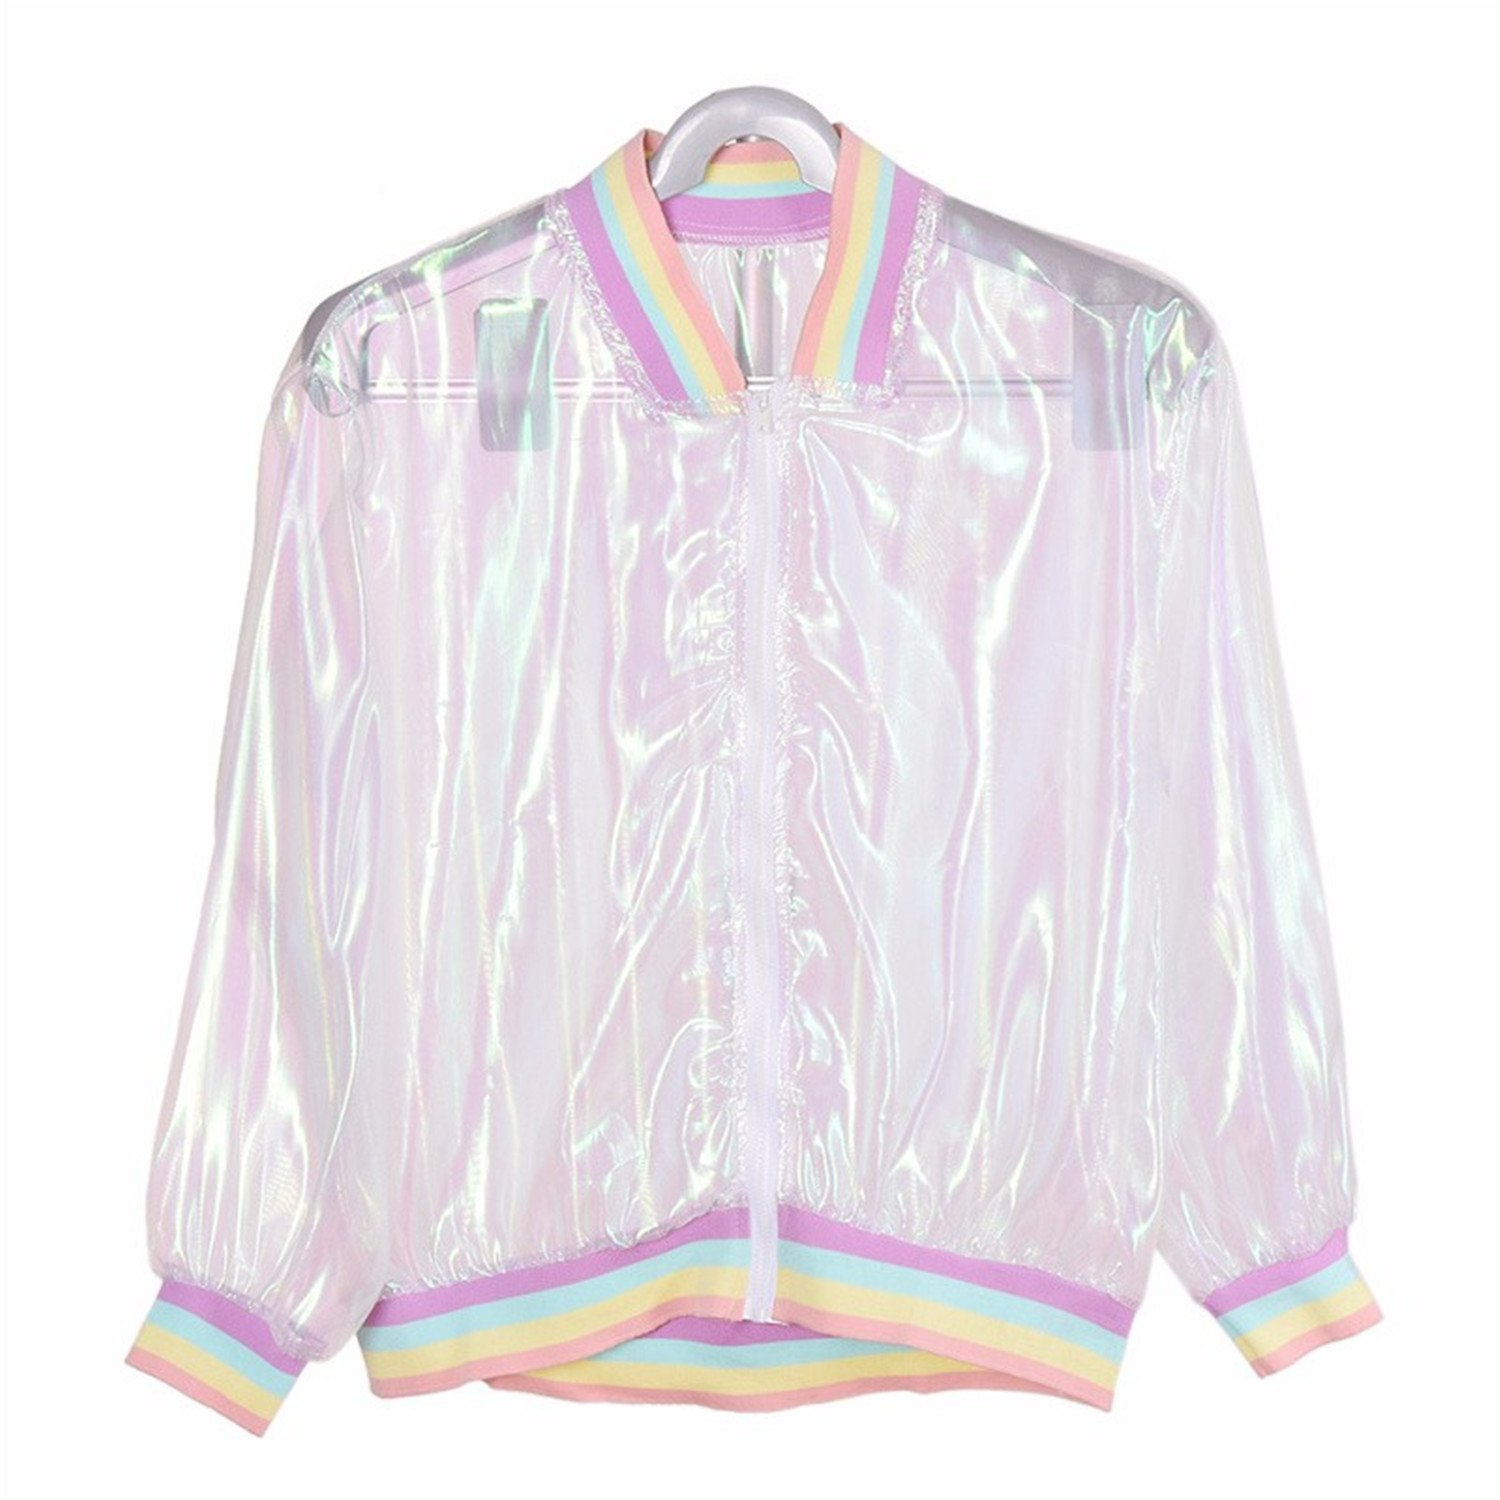 Mandaartins Women Jacket Laser Rainbow Coat Transparent Bomber Jacket Sunproof